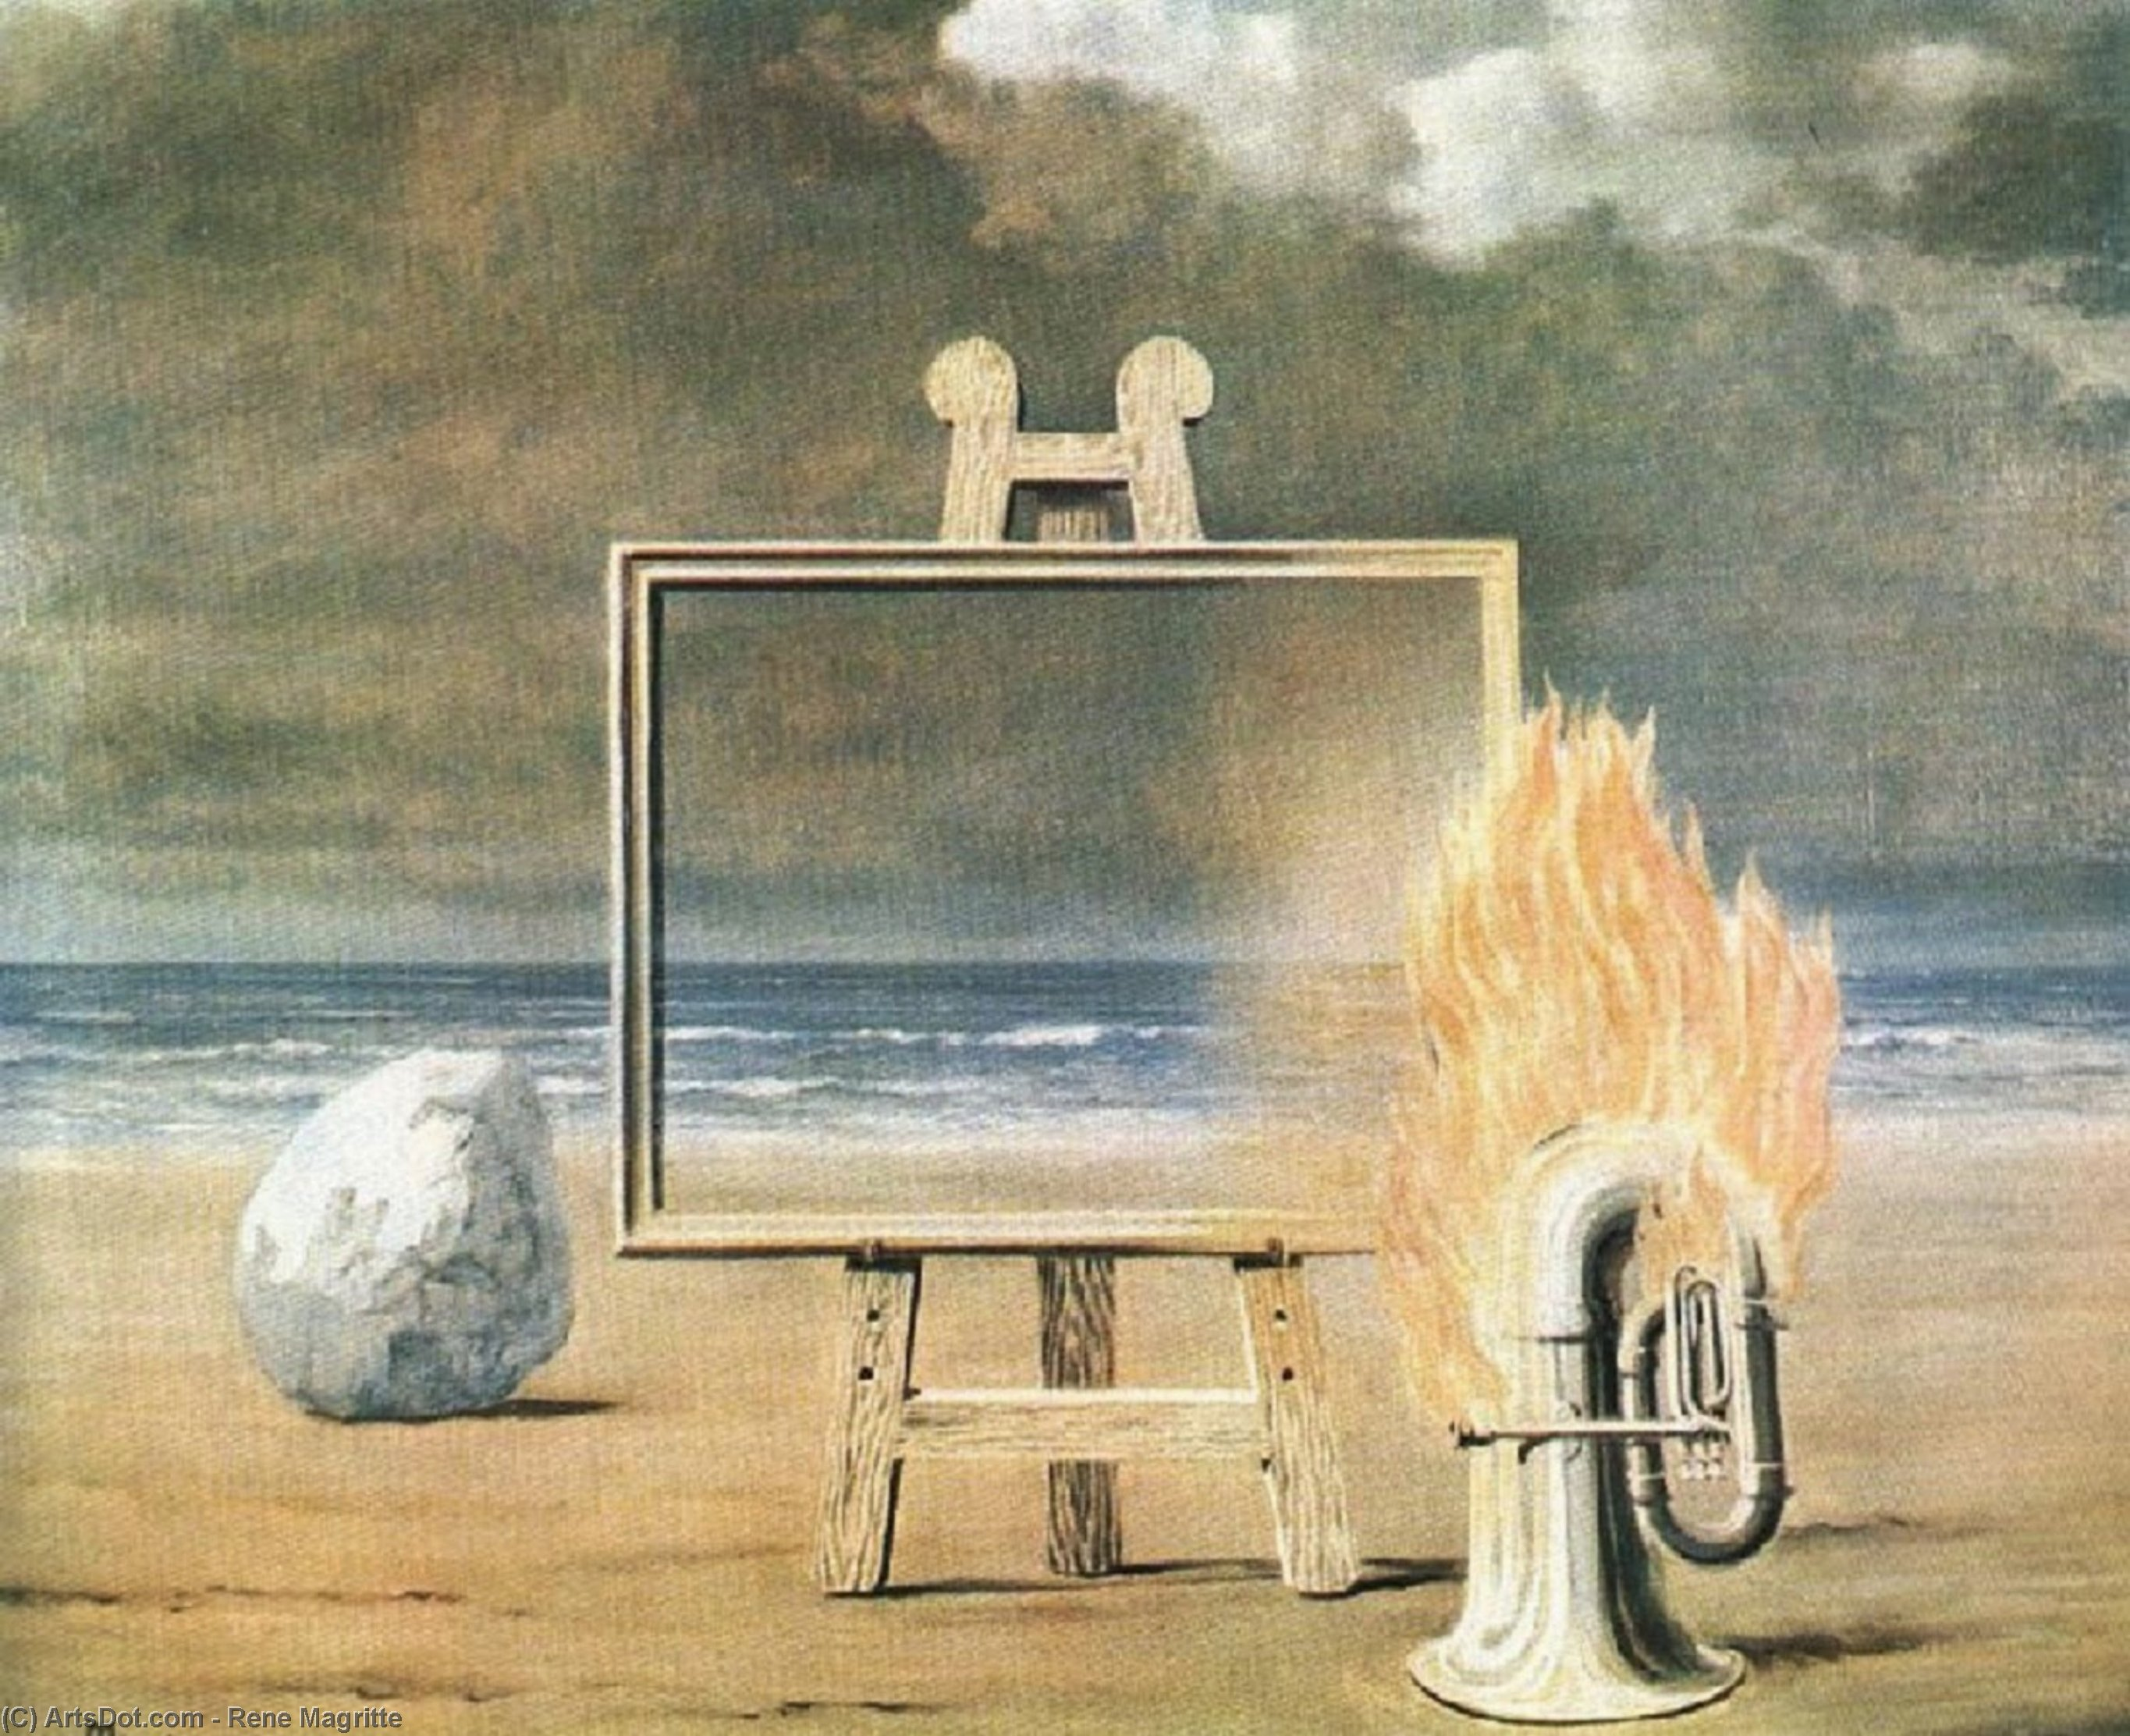 The fair captive, 1947 by Rene Magritte (1898-1967, Belgium)